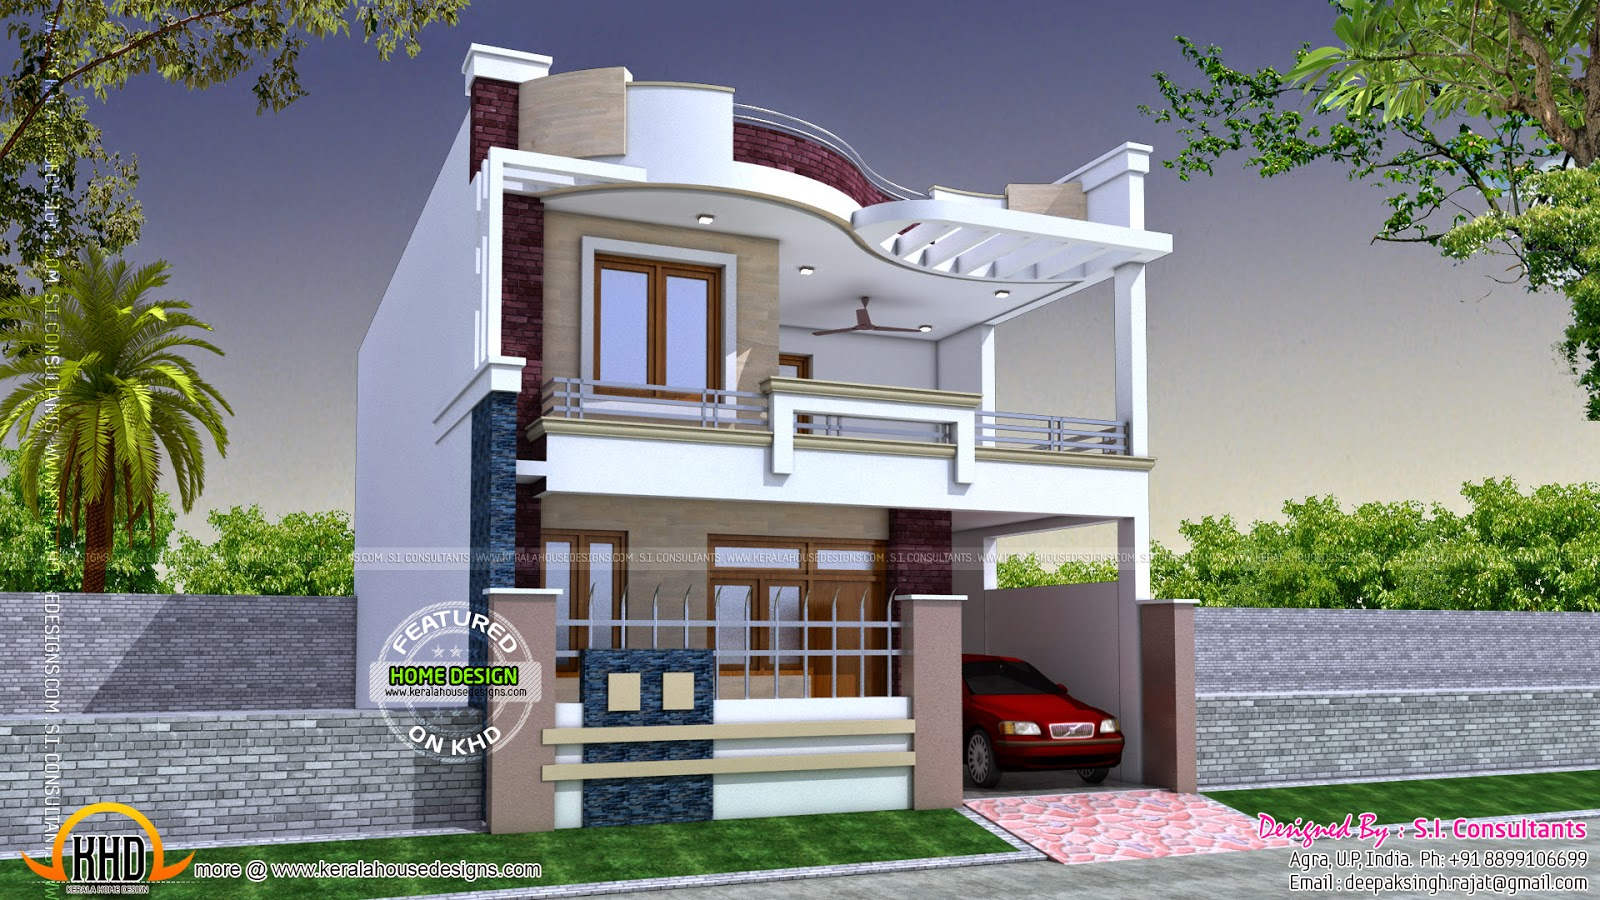 Modern indian home design kerala home design and floor plans Simple house designs indian style